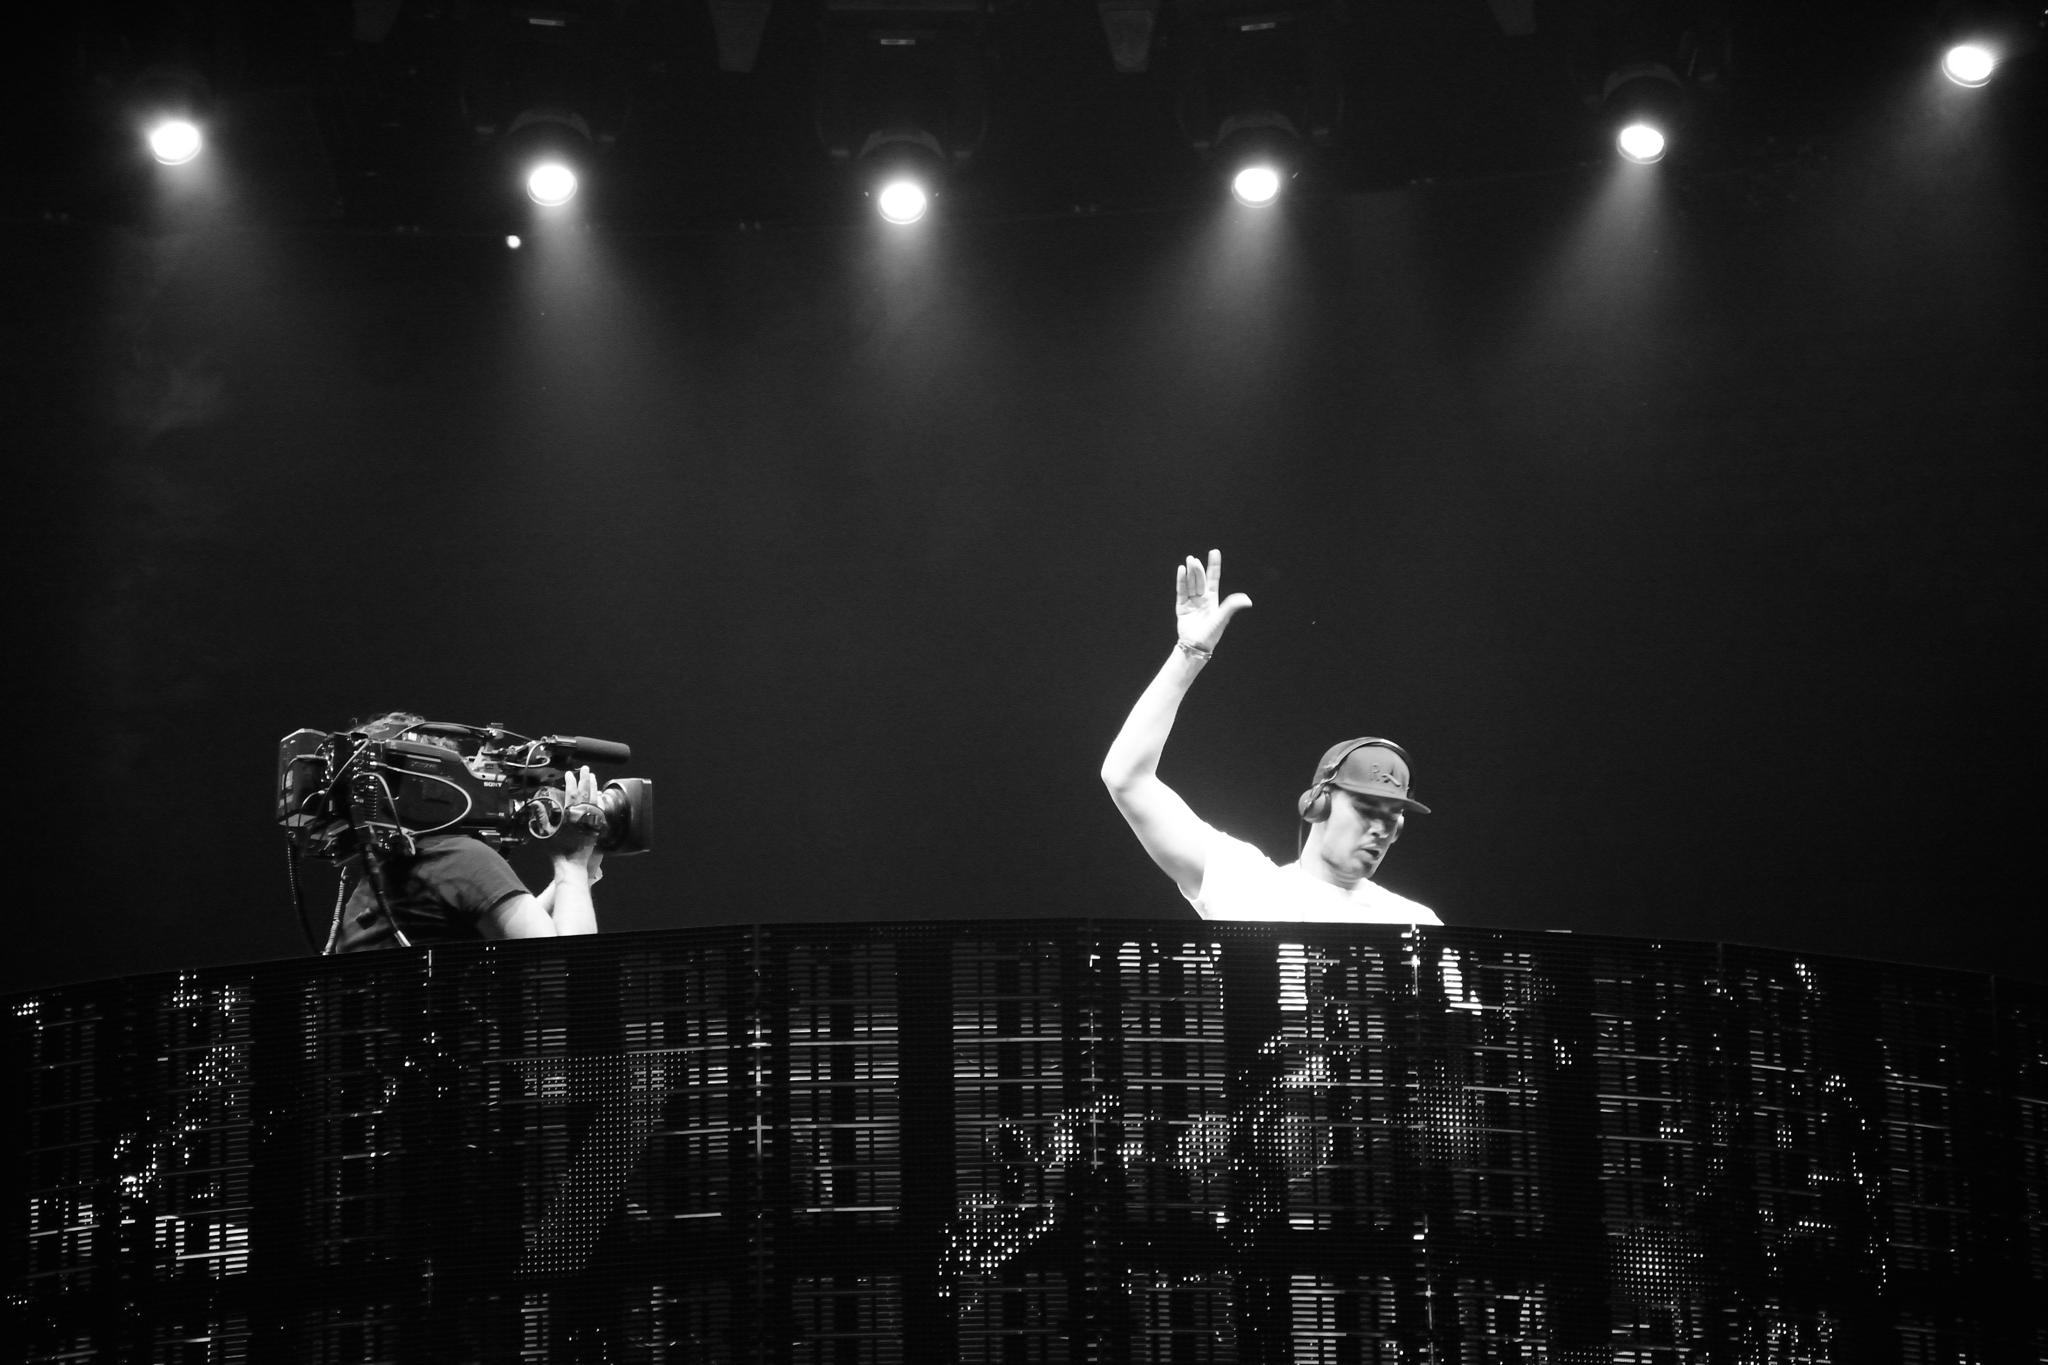 Afrojack at the Amsterdam Arena by Wim Byl